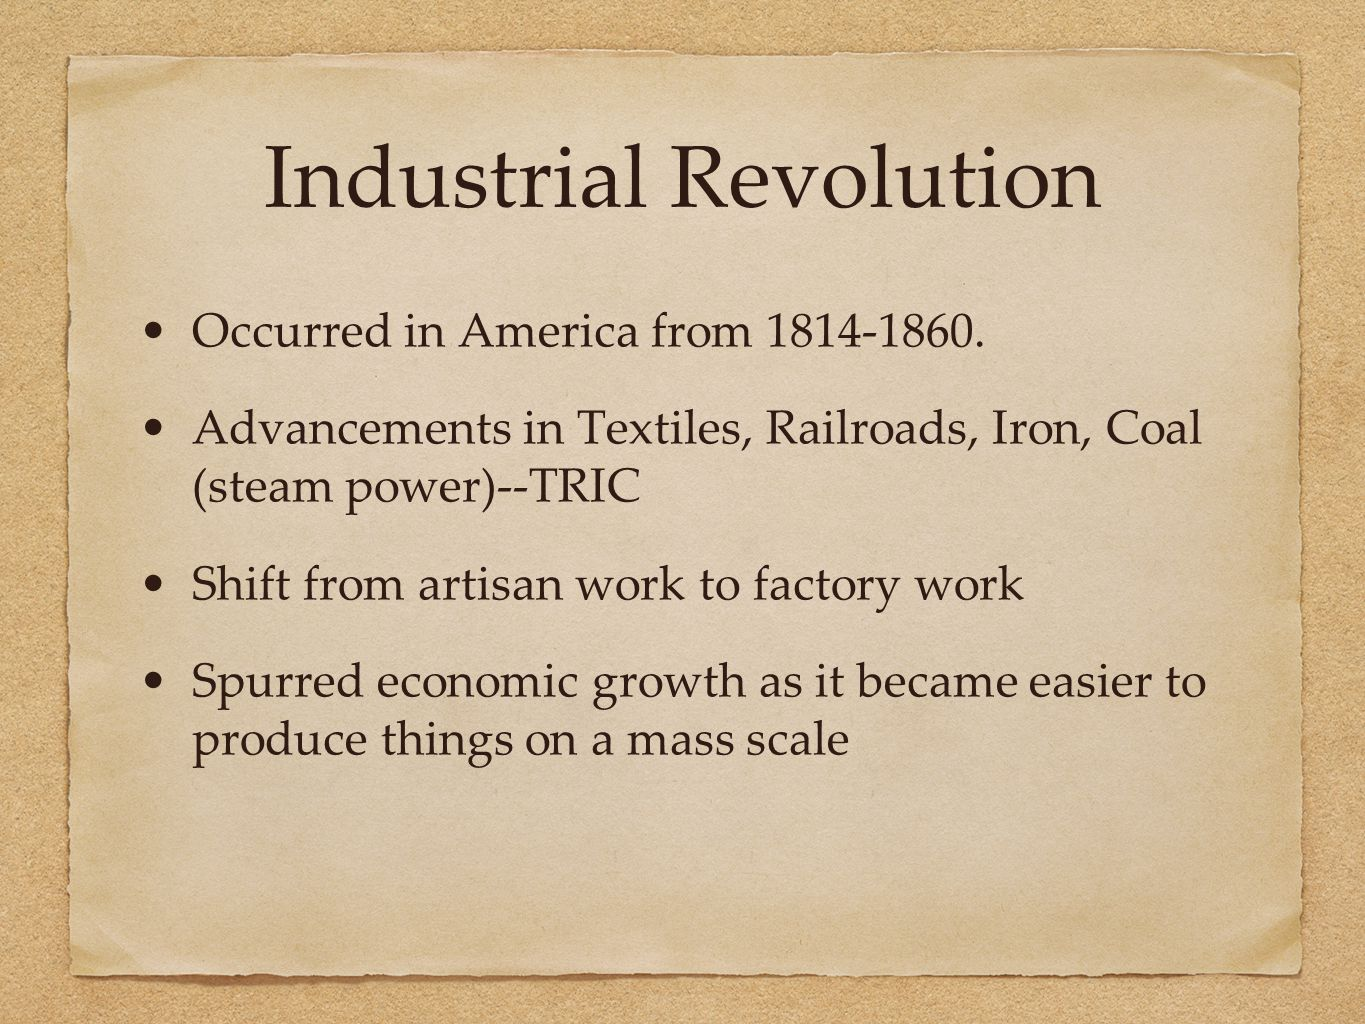 Industrial Revolution Occurred in America from 1814-1860. Advancements in Textiles, Railroads, Iron, Coal (steam power)--TRIC Shift from artisan work